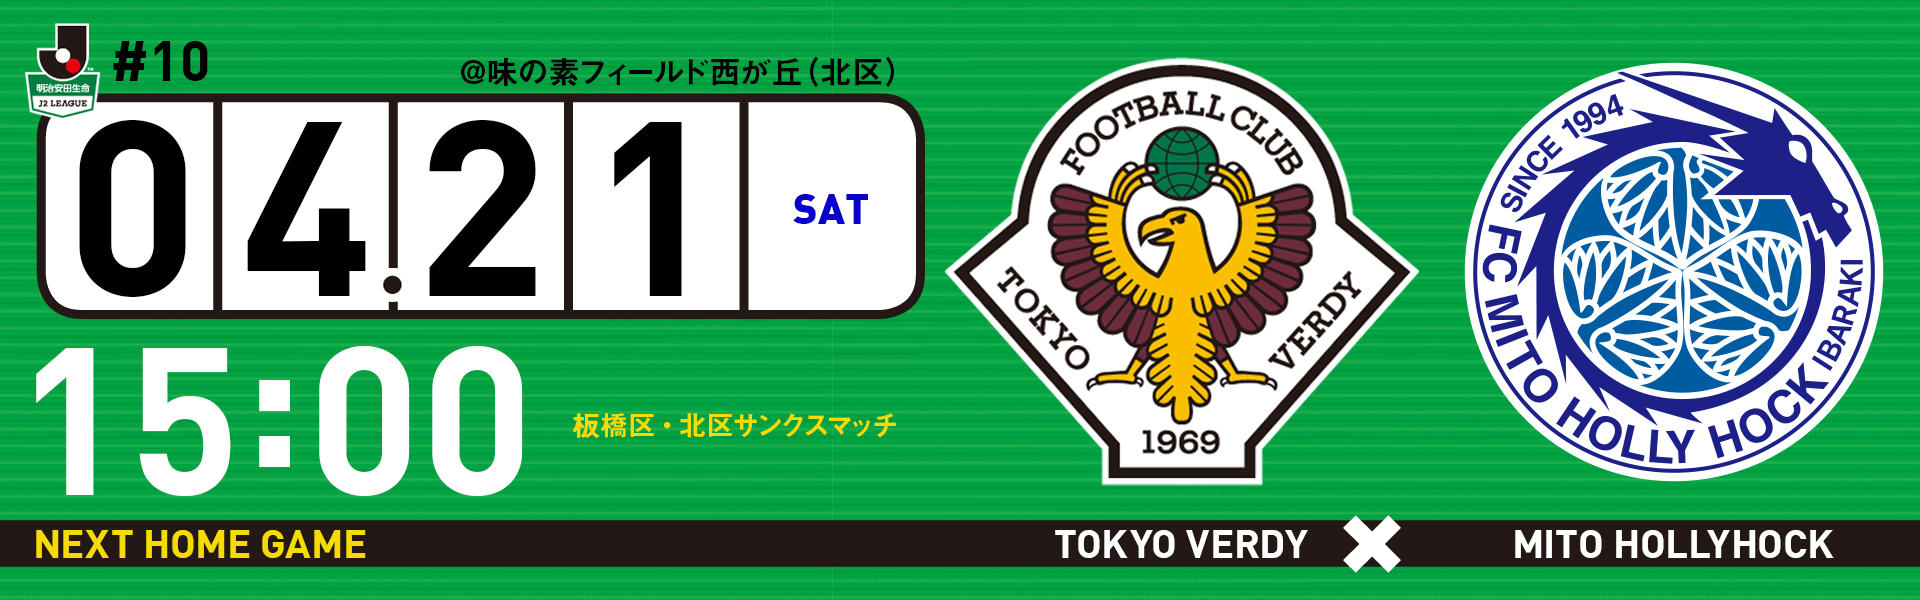 2018_Game_announcement_home_verdy421.jpg